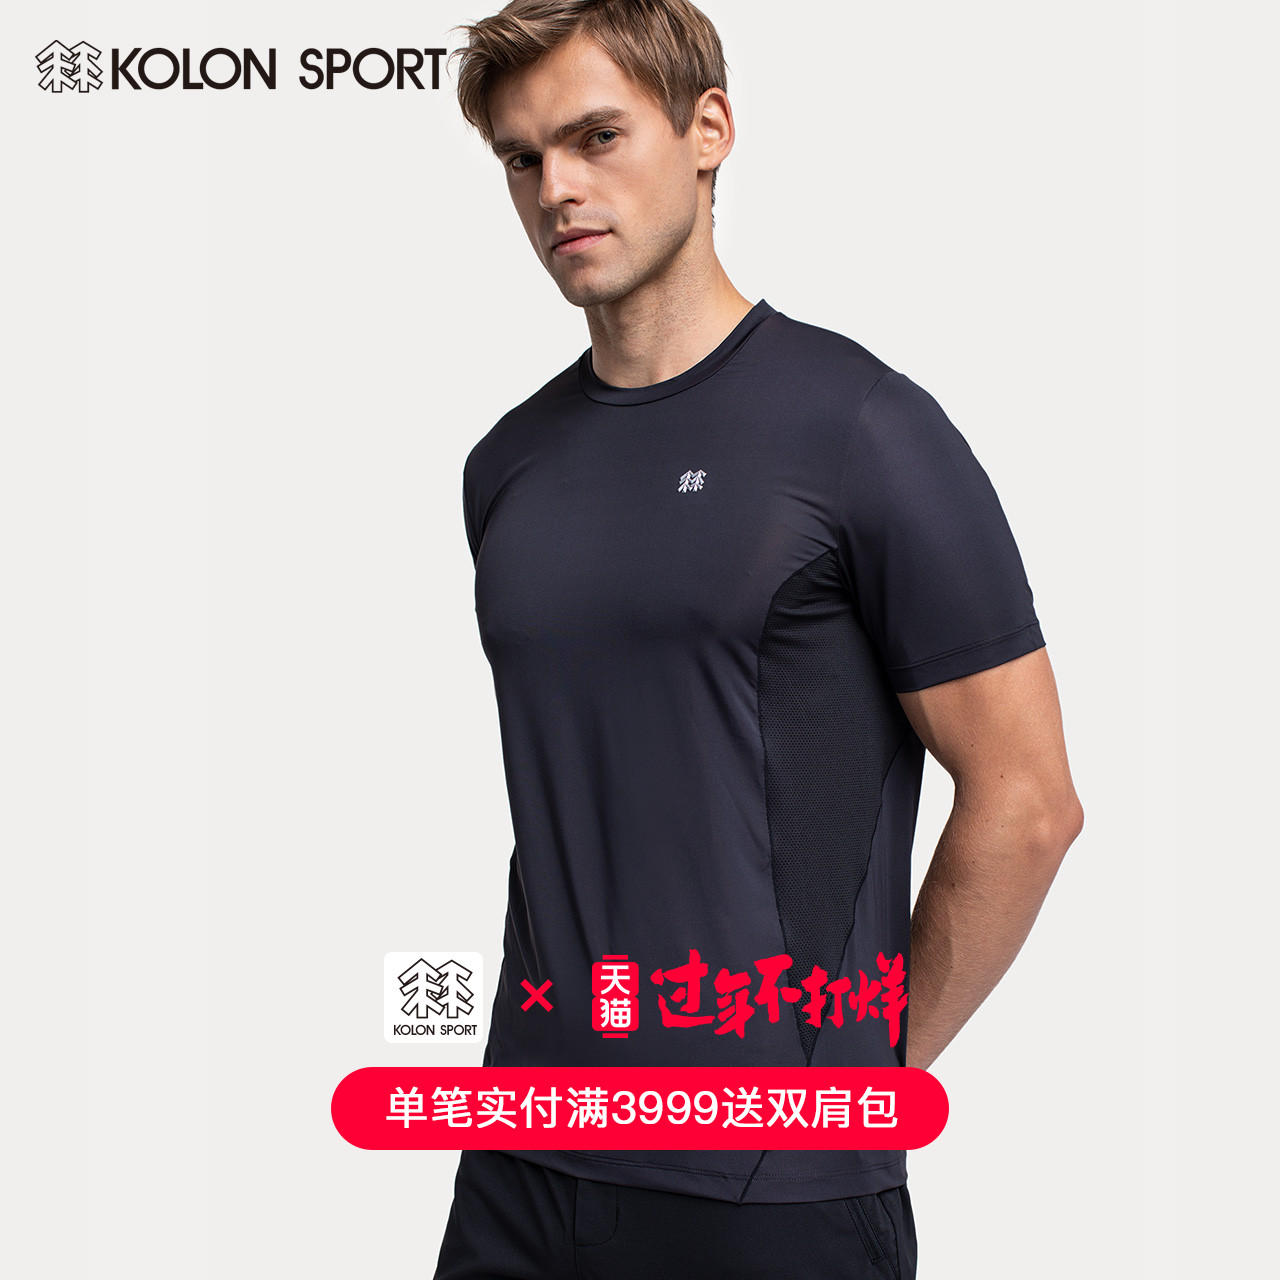 KOLONSPORT Coromandel men's Hong Kong edition perforated breathable letter printed Crew Neck South Korea outdoor sports T-shirt